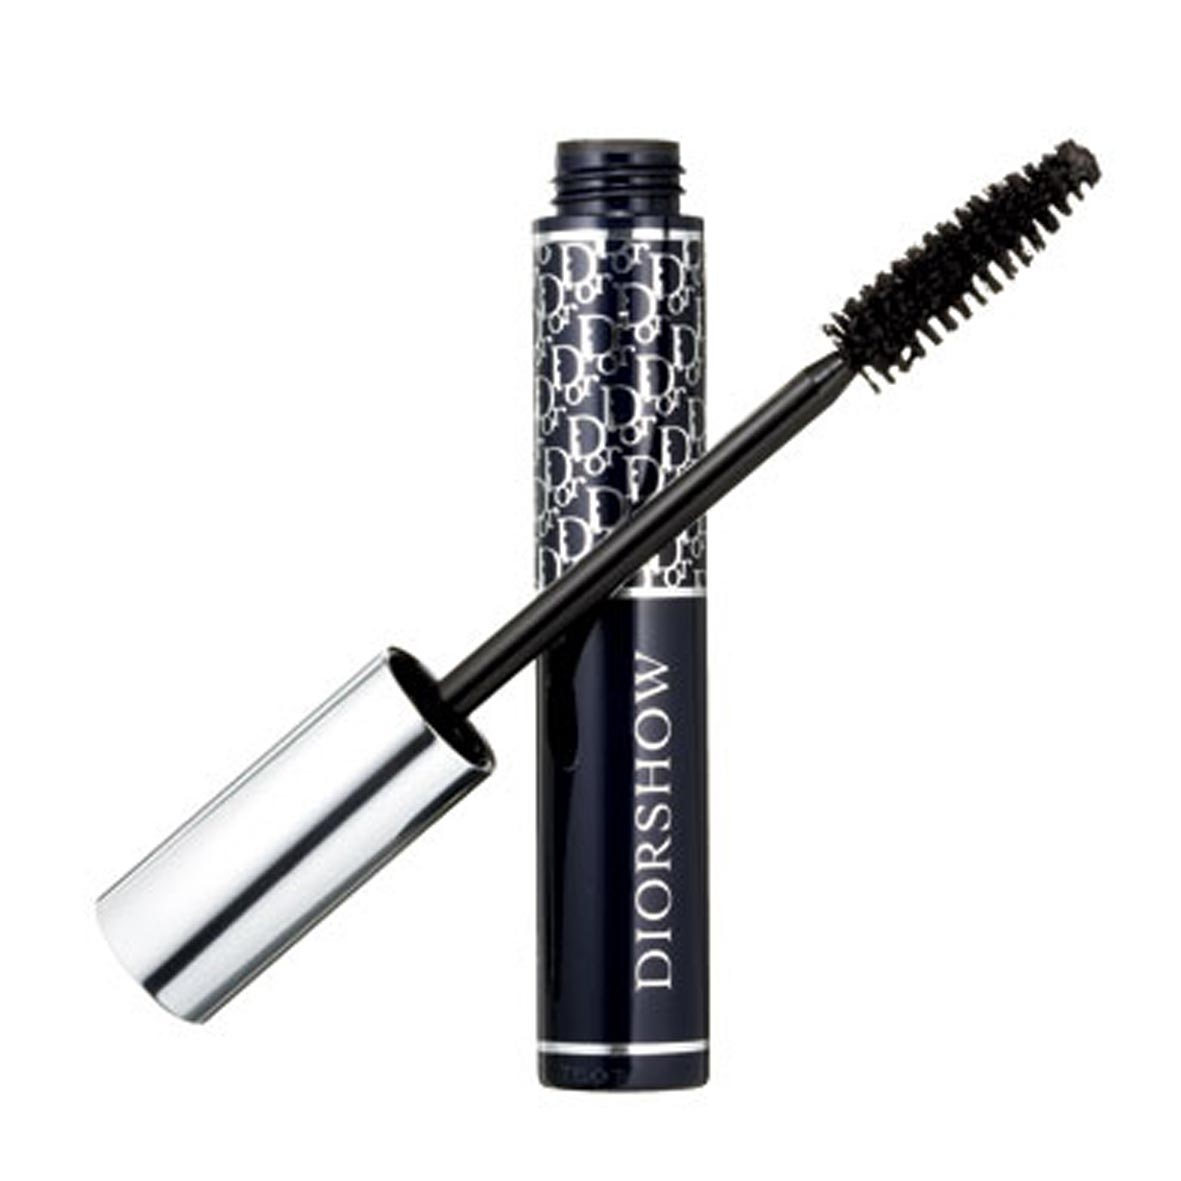 SISJ BEAUTY: WHAT MASCARA TO USE AND WHY